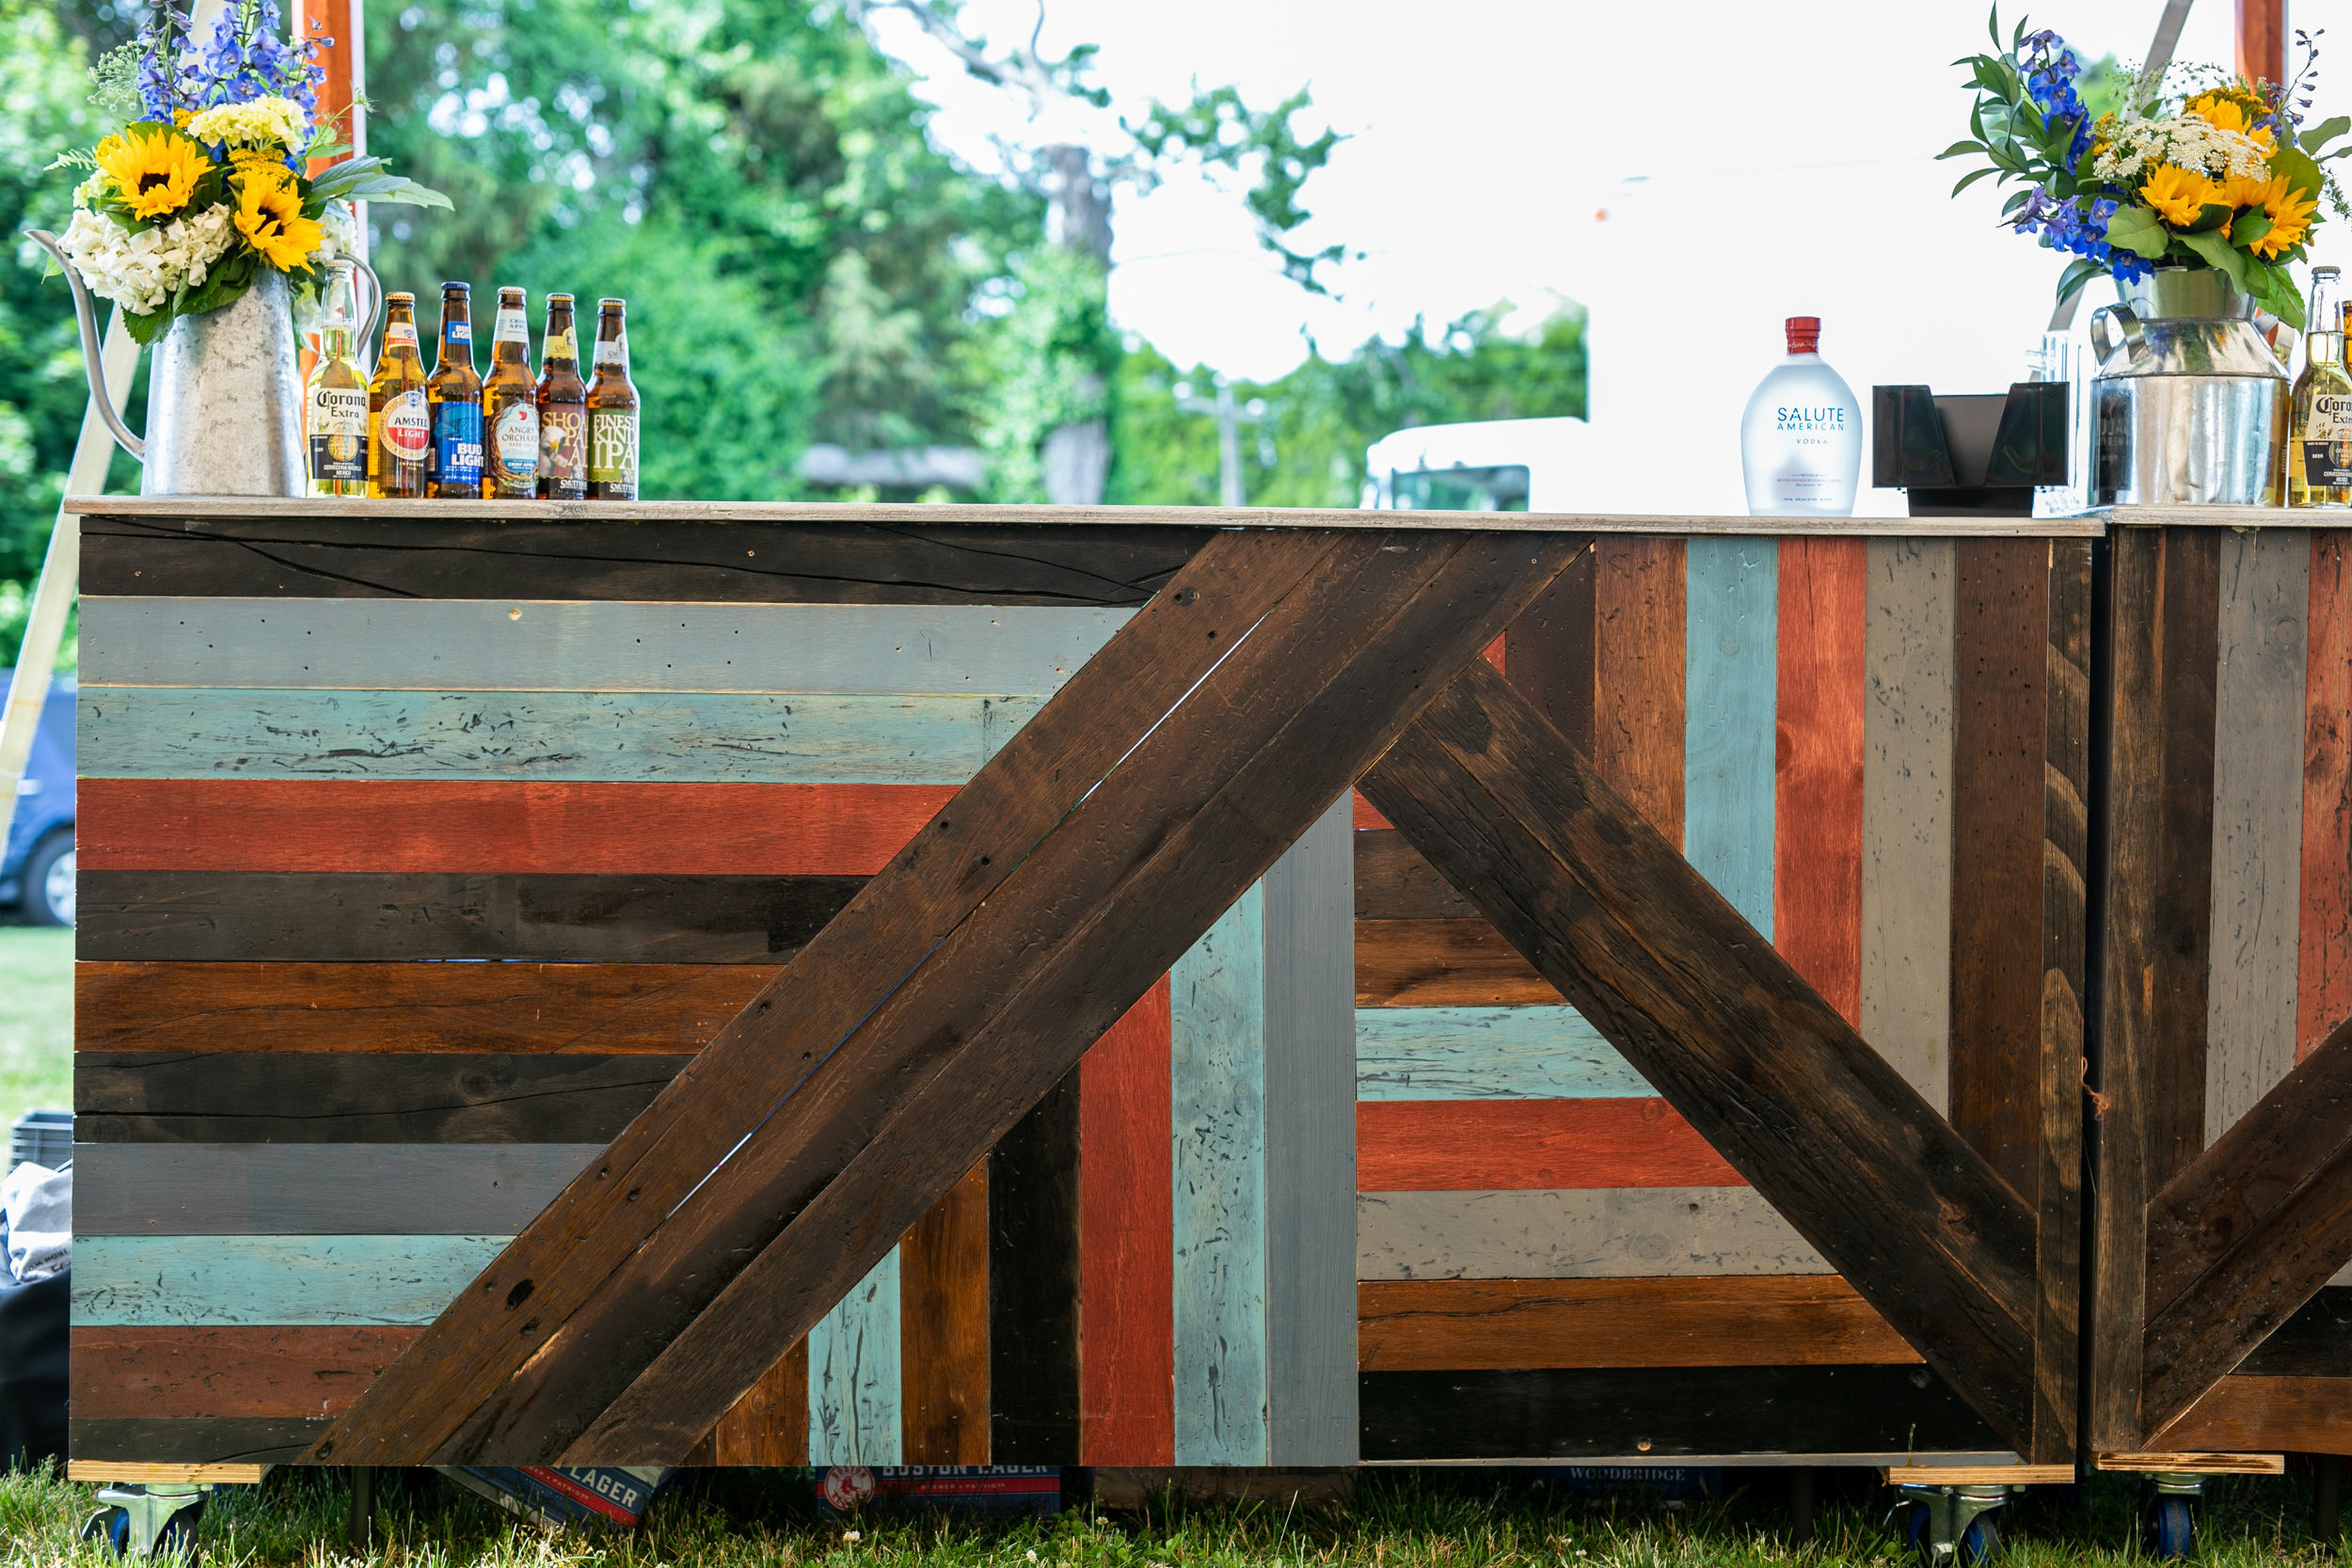 Veterans_Count_North_Hampton_Seacoast_Corporate_Production_Pizzuti_Runnymede_Farm_Malloy_Events_Custom_Bar_Panel